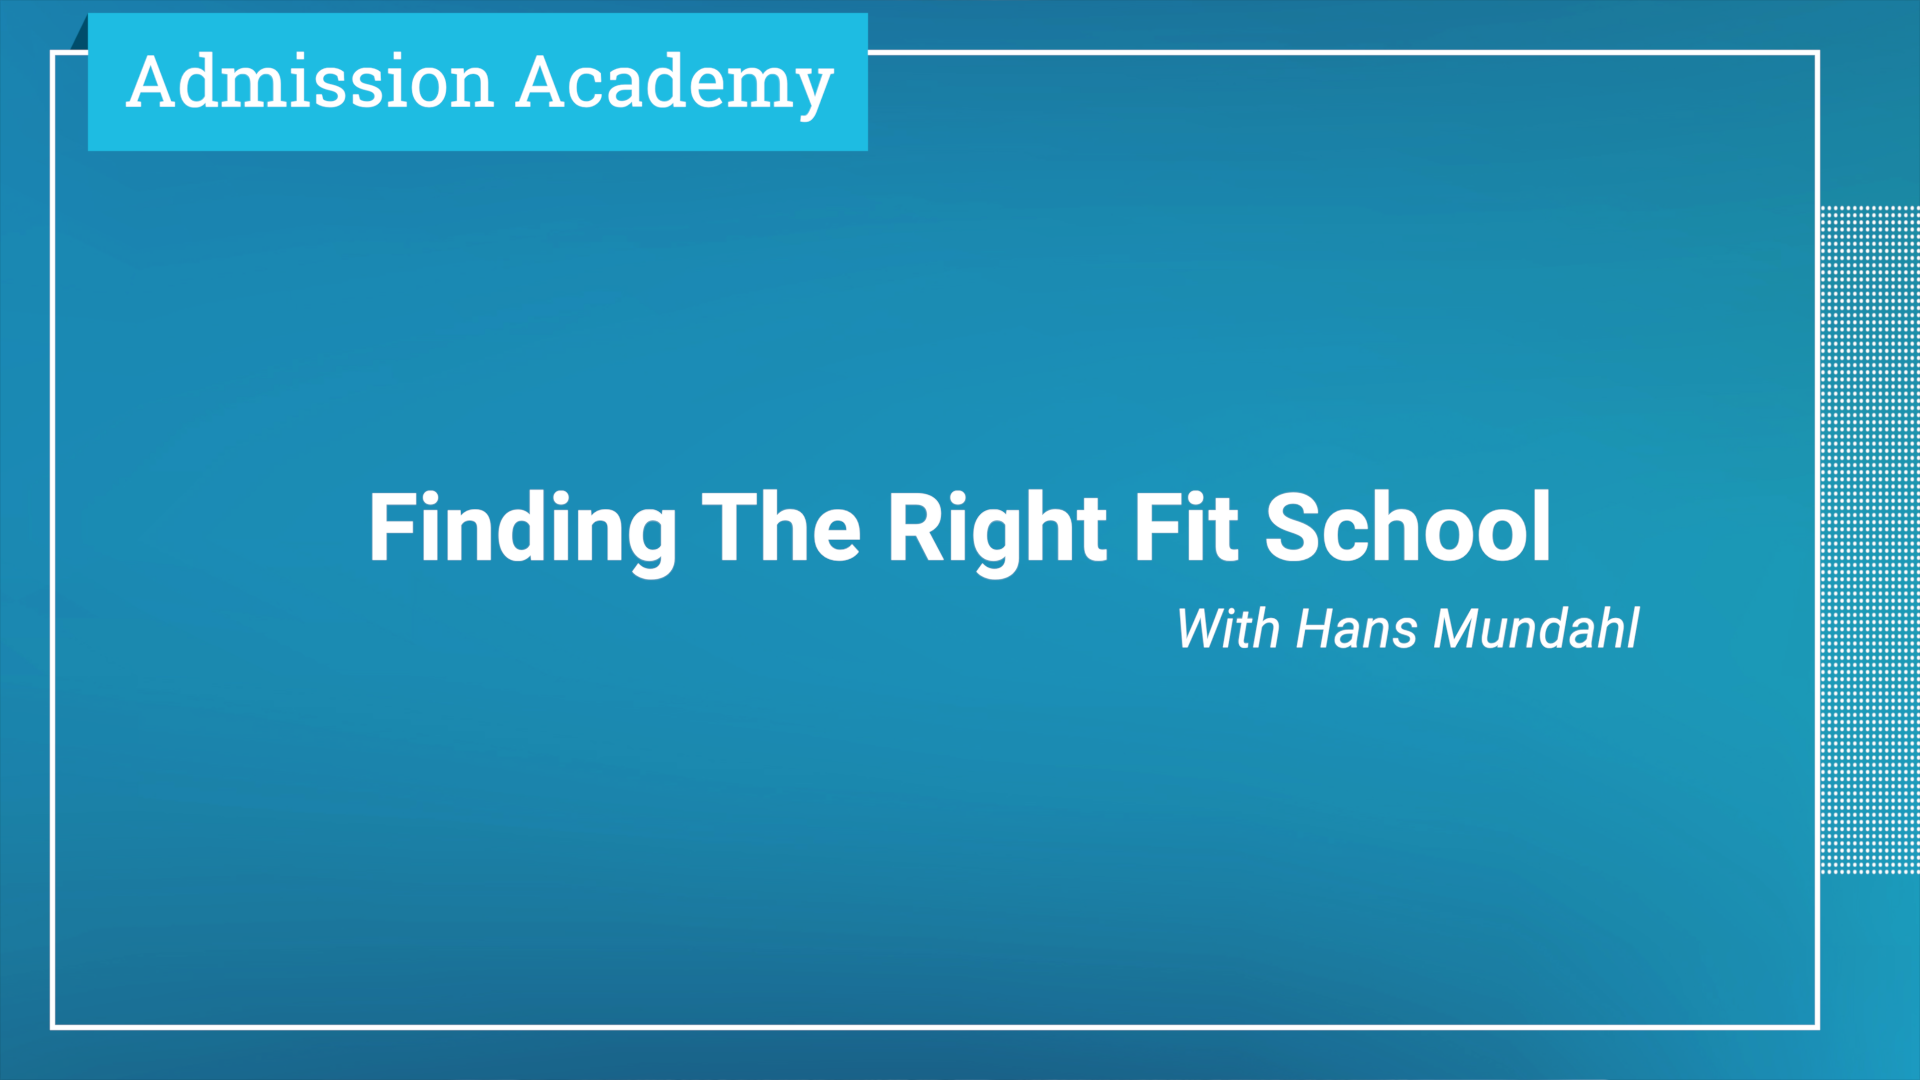 Finding The Right Fit School